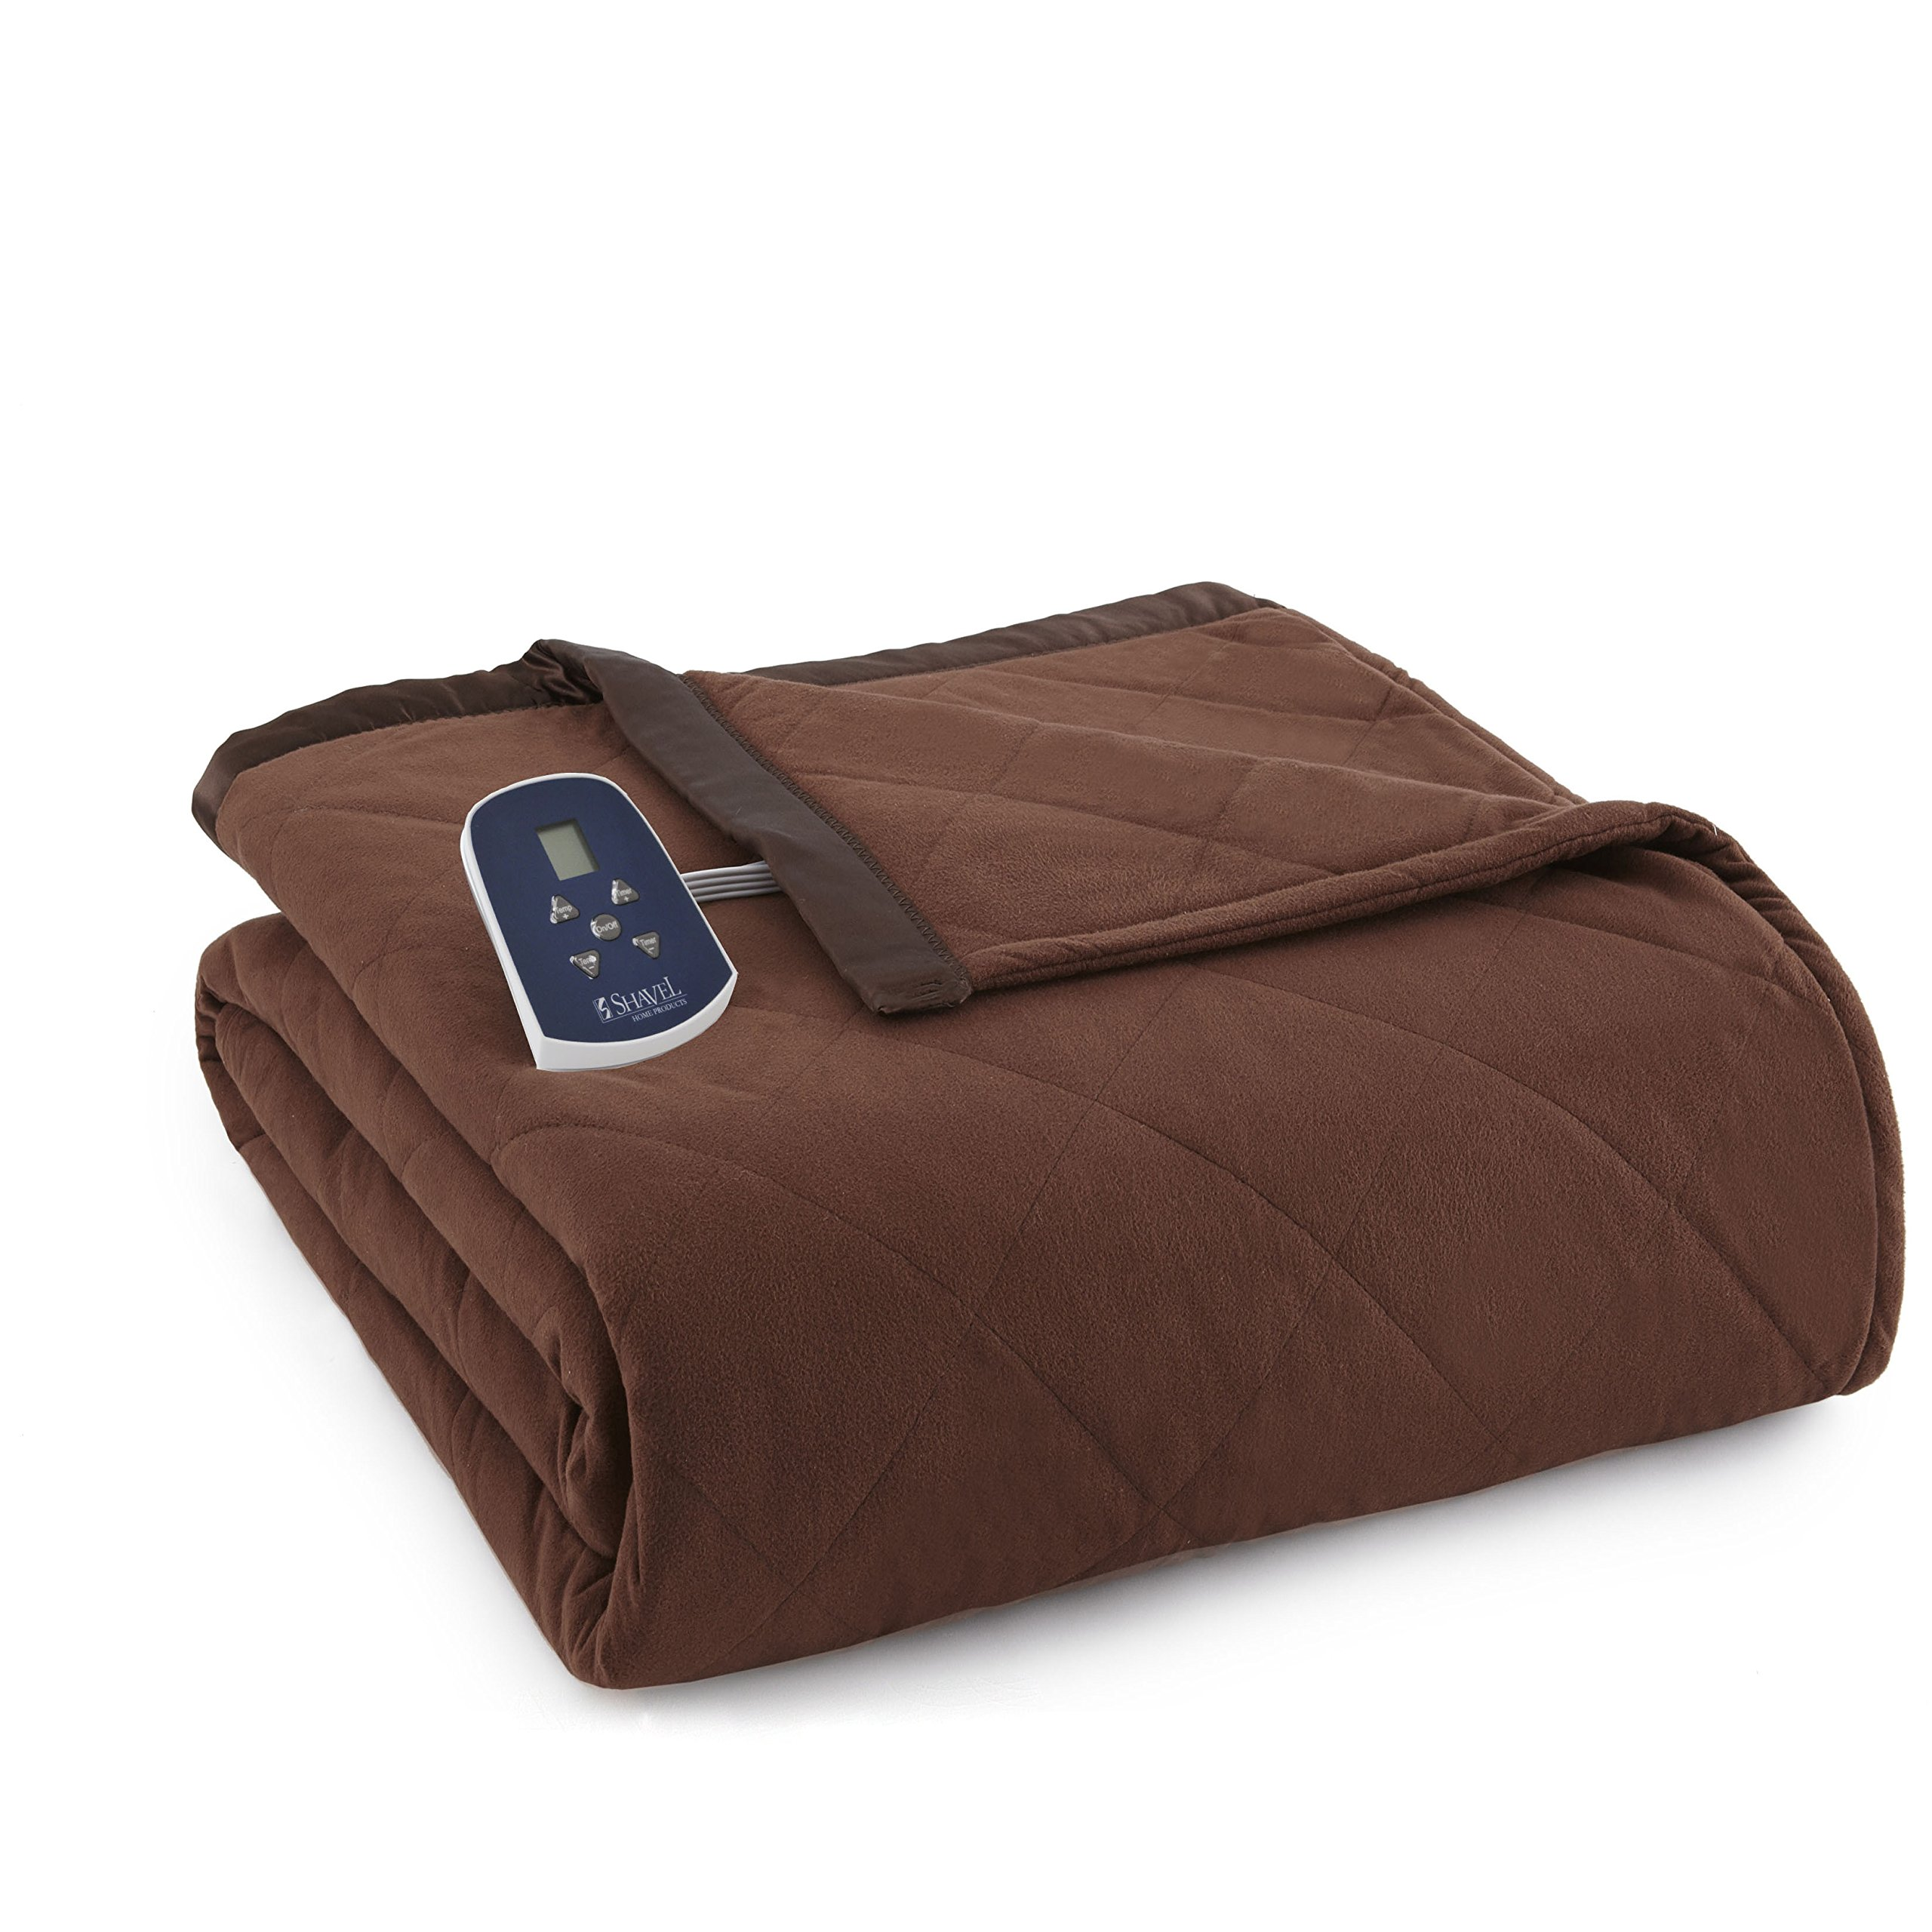 Shavel Home Products Thermee Electric Blanket, Cocoa, Queen by Thermee Micro Flannel